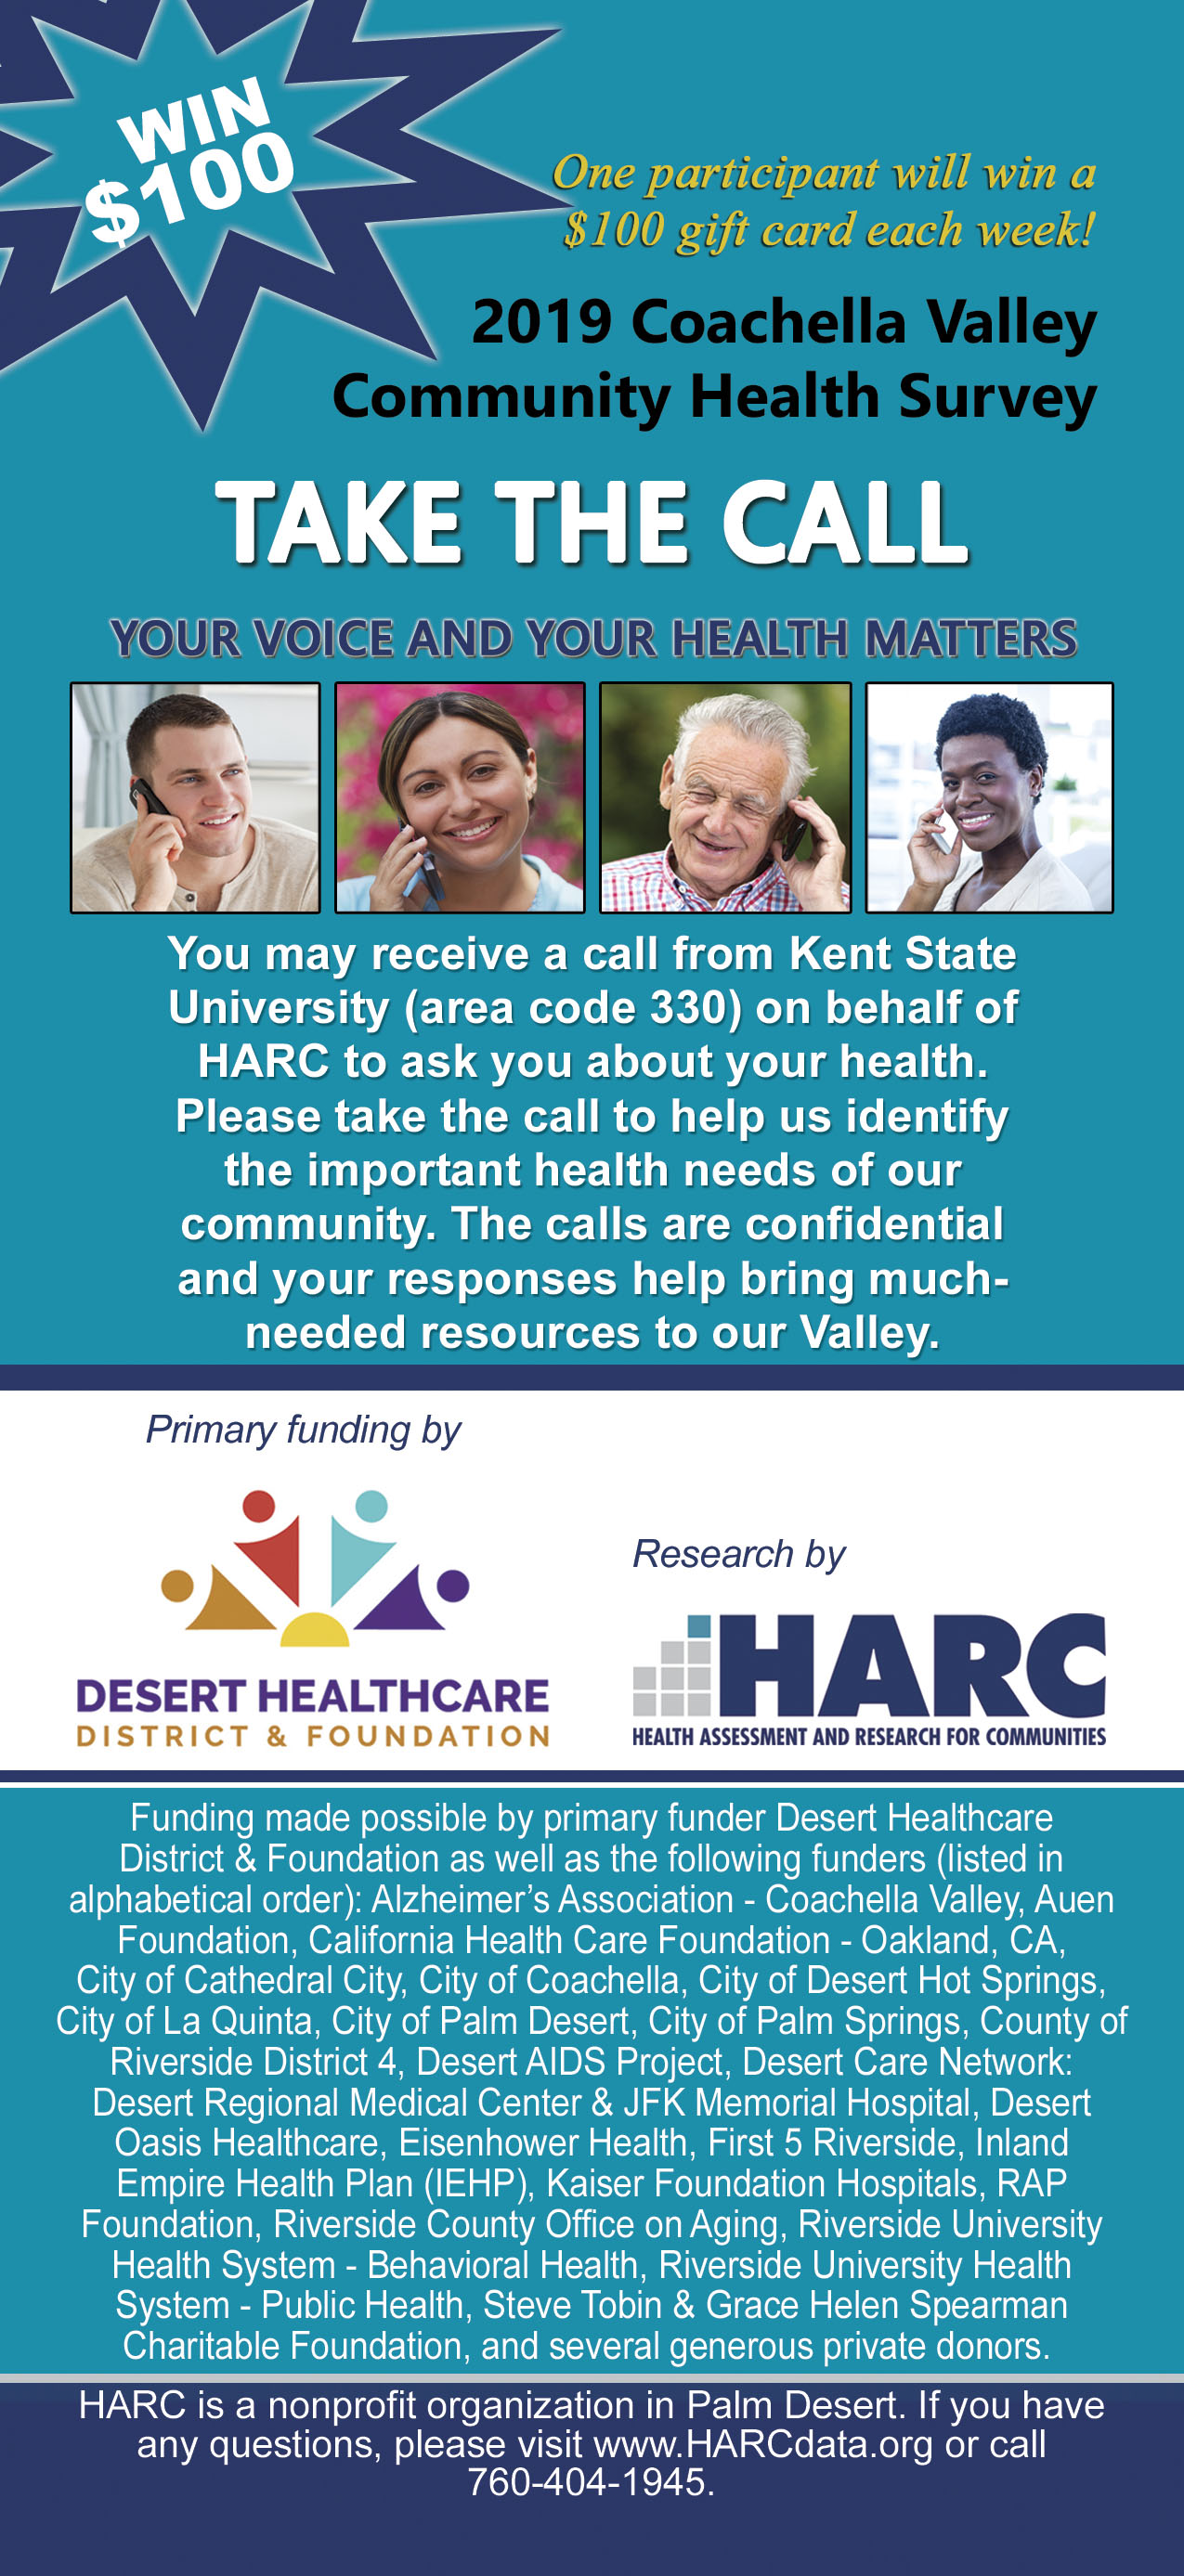 2019 Coachella Valley Community Health Survey